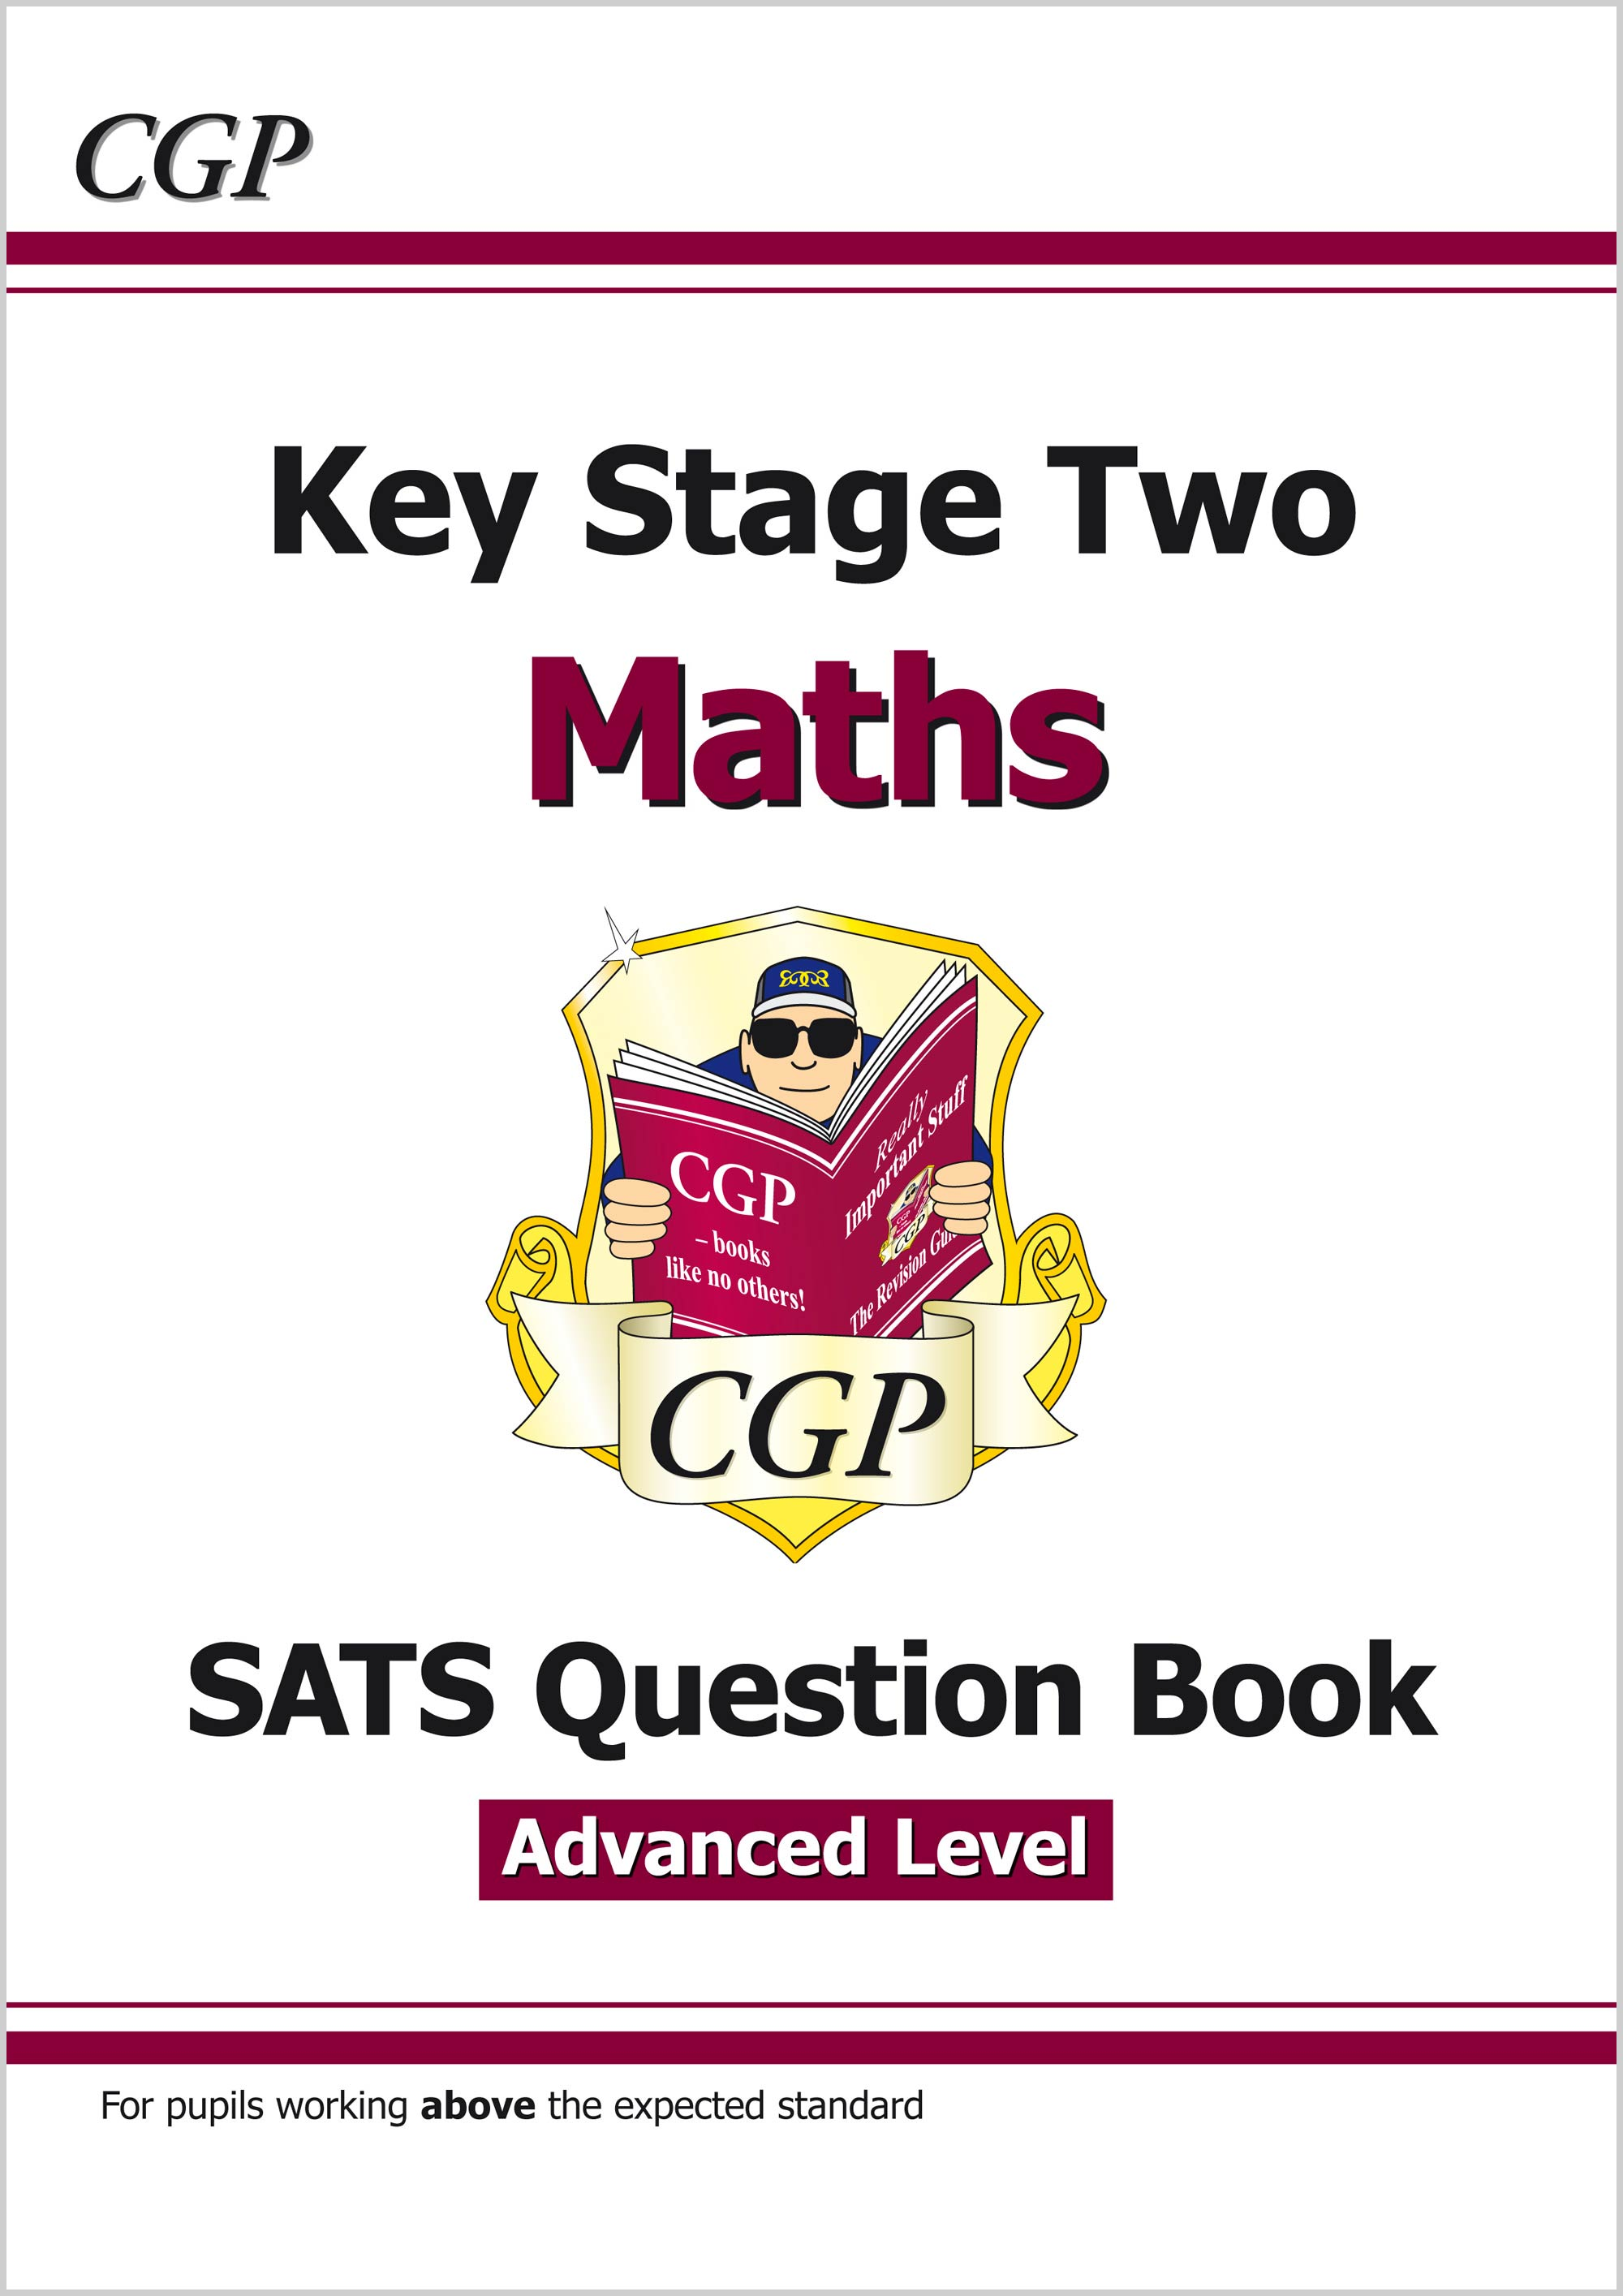 MLHW22 - KS2 Maths Targeted SATS Question Book - Advanced Level (for the 2019 tests)